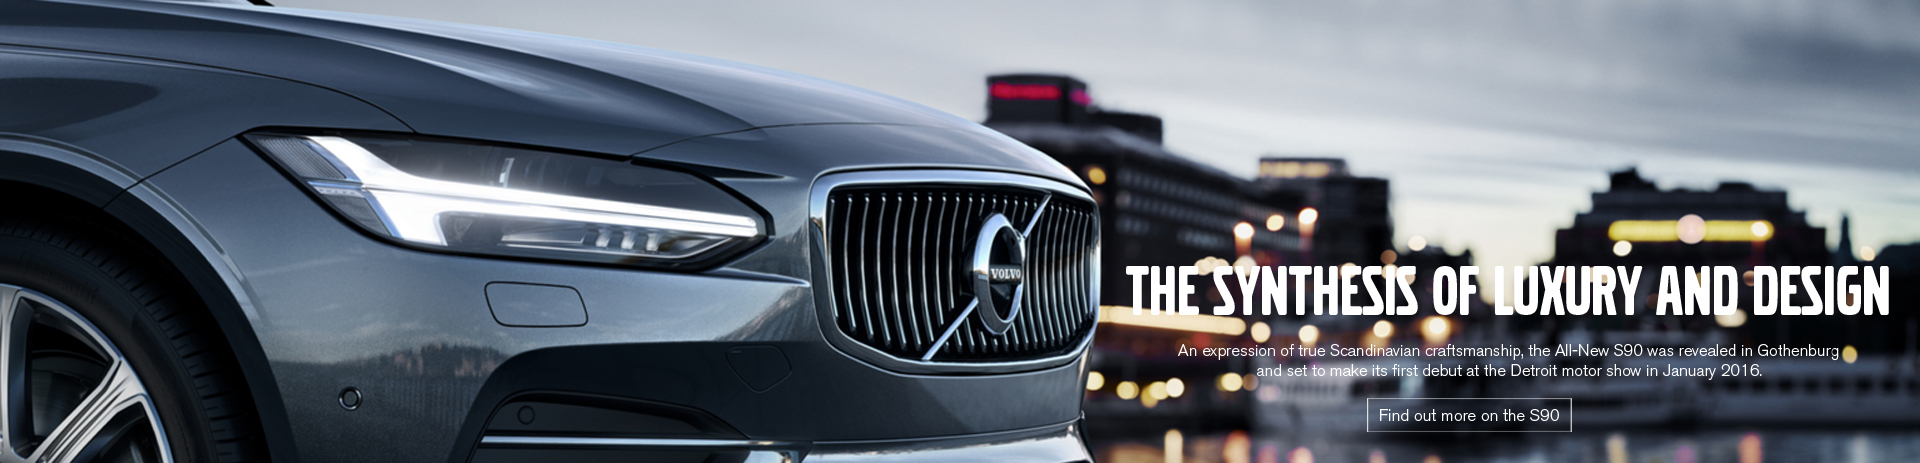 Volvo S90 Coming Soon